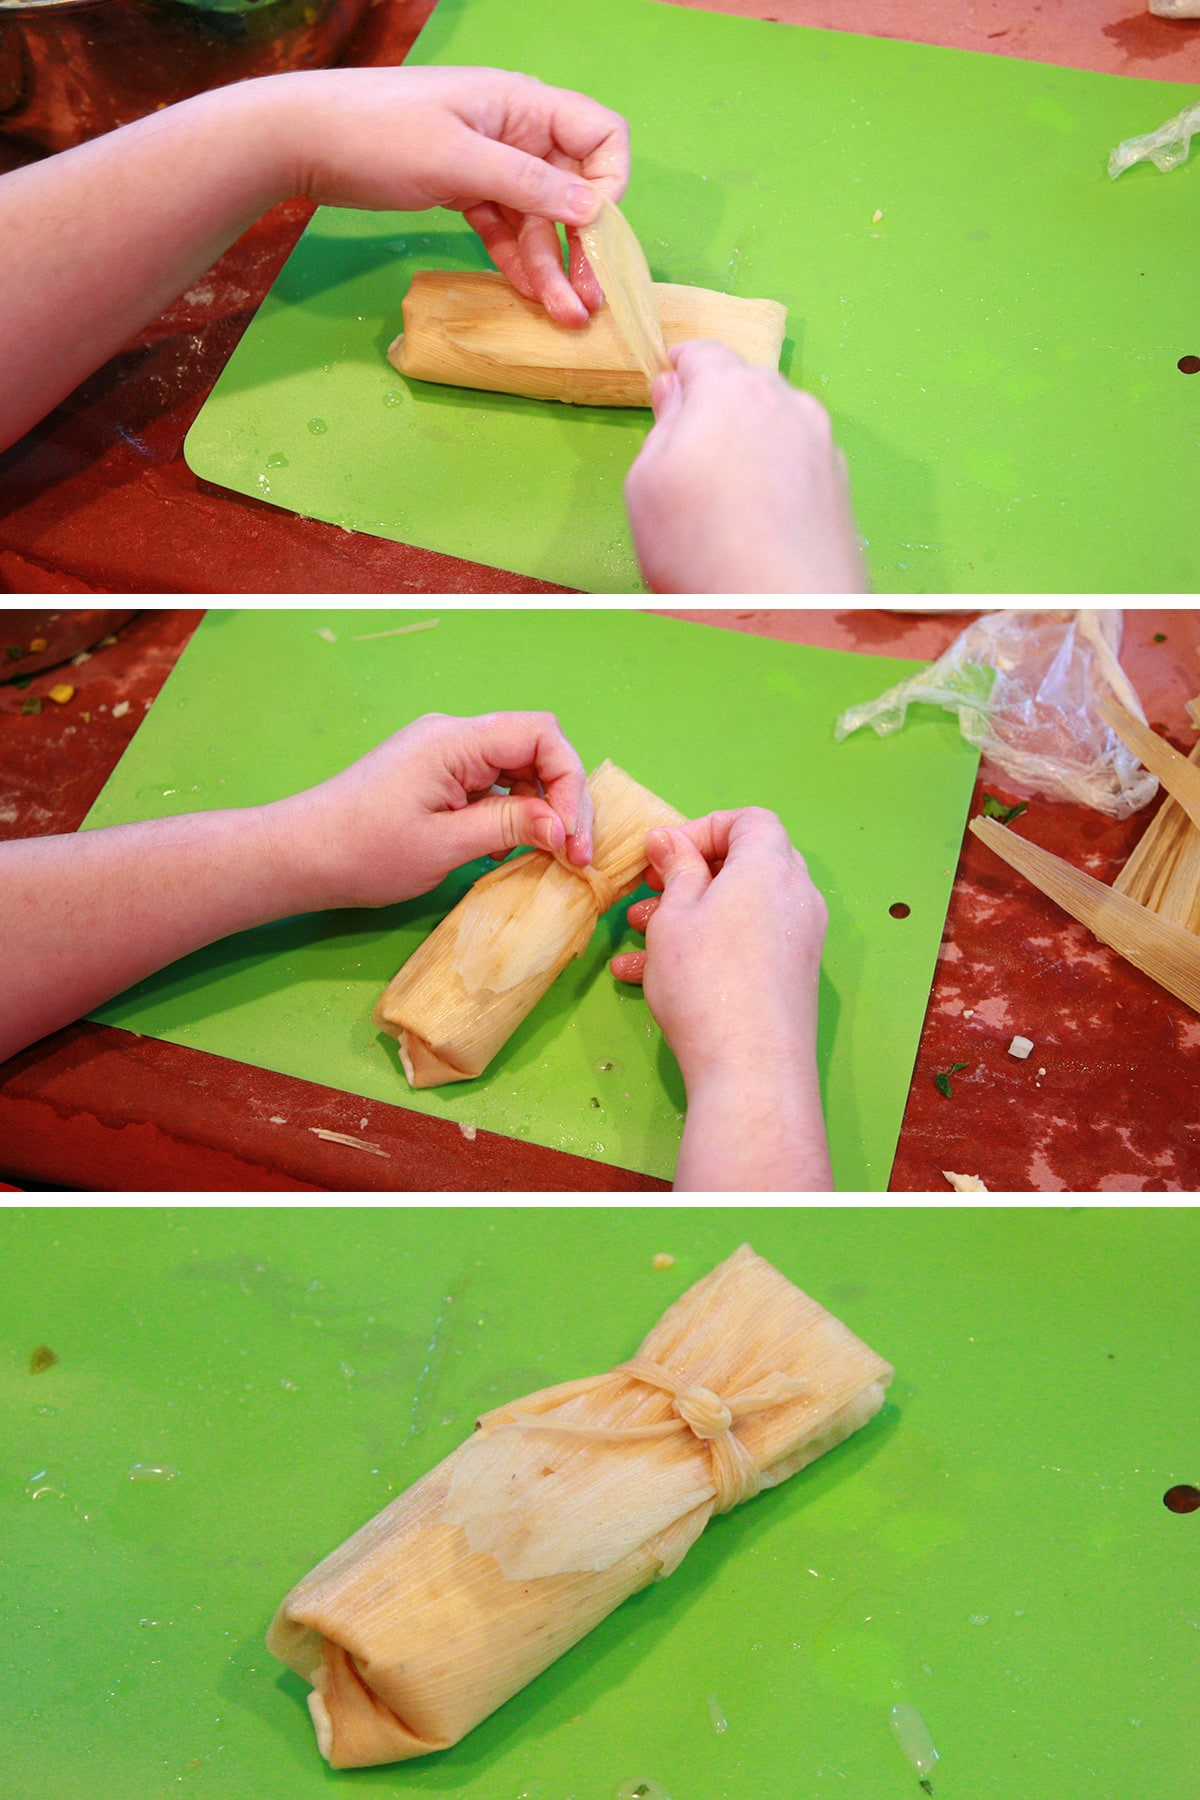 Two hands fold and tie off the tamale, as described.